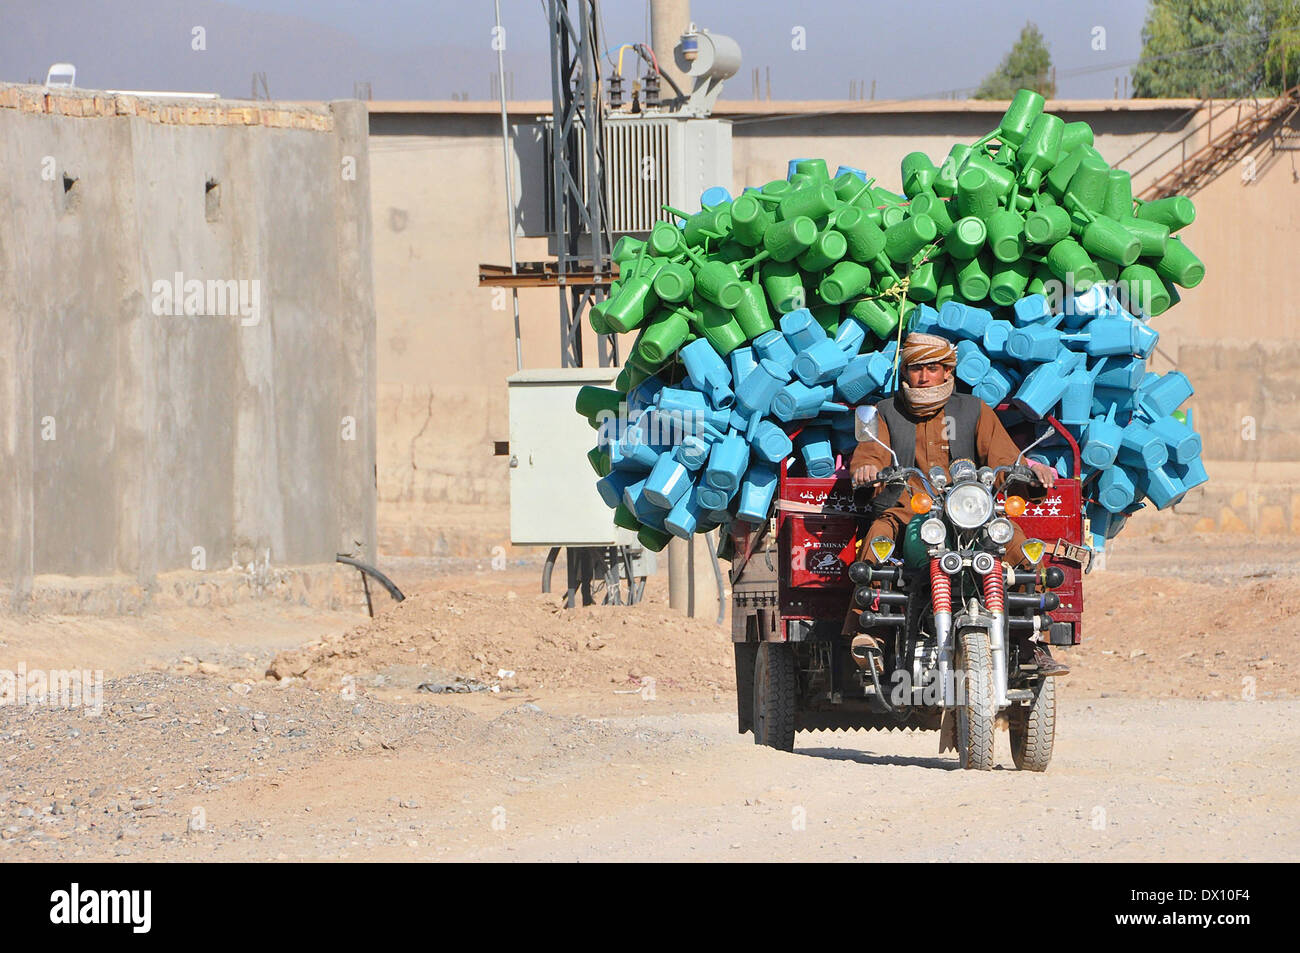 An Afghan man rides a motorized tricycle loaded down with plastic pitchers at the Shur Andam Industrial park November 7, 2012 in Kandahar City, Afghanistan. - Stock Image